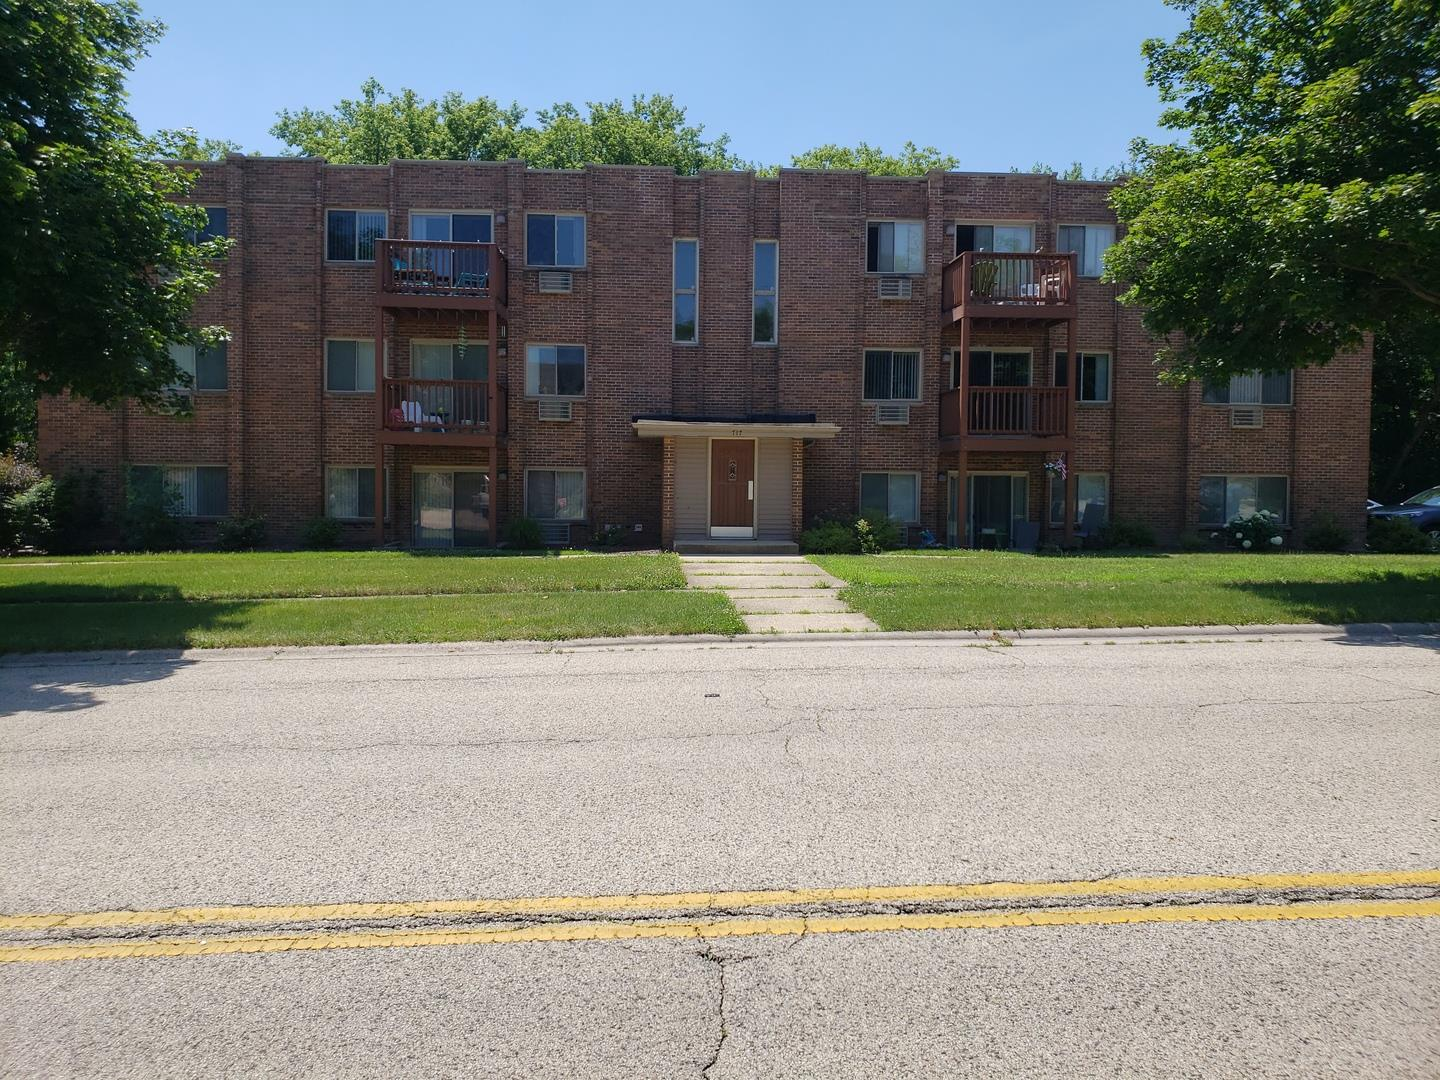 717 Strom Drive #3A, West Dundee, IL 60118 - #: 10916087